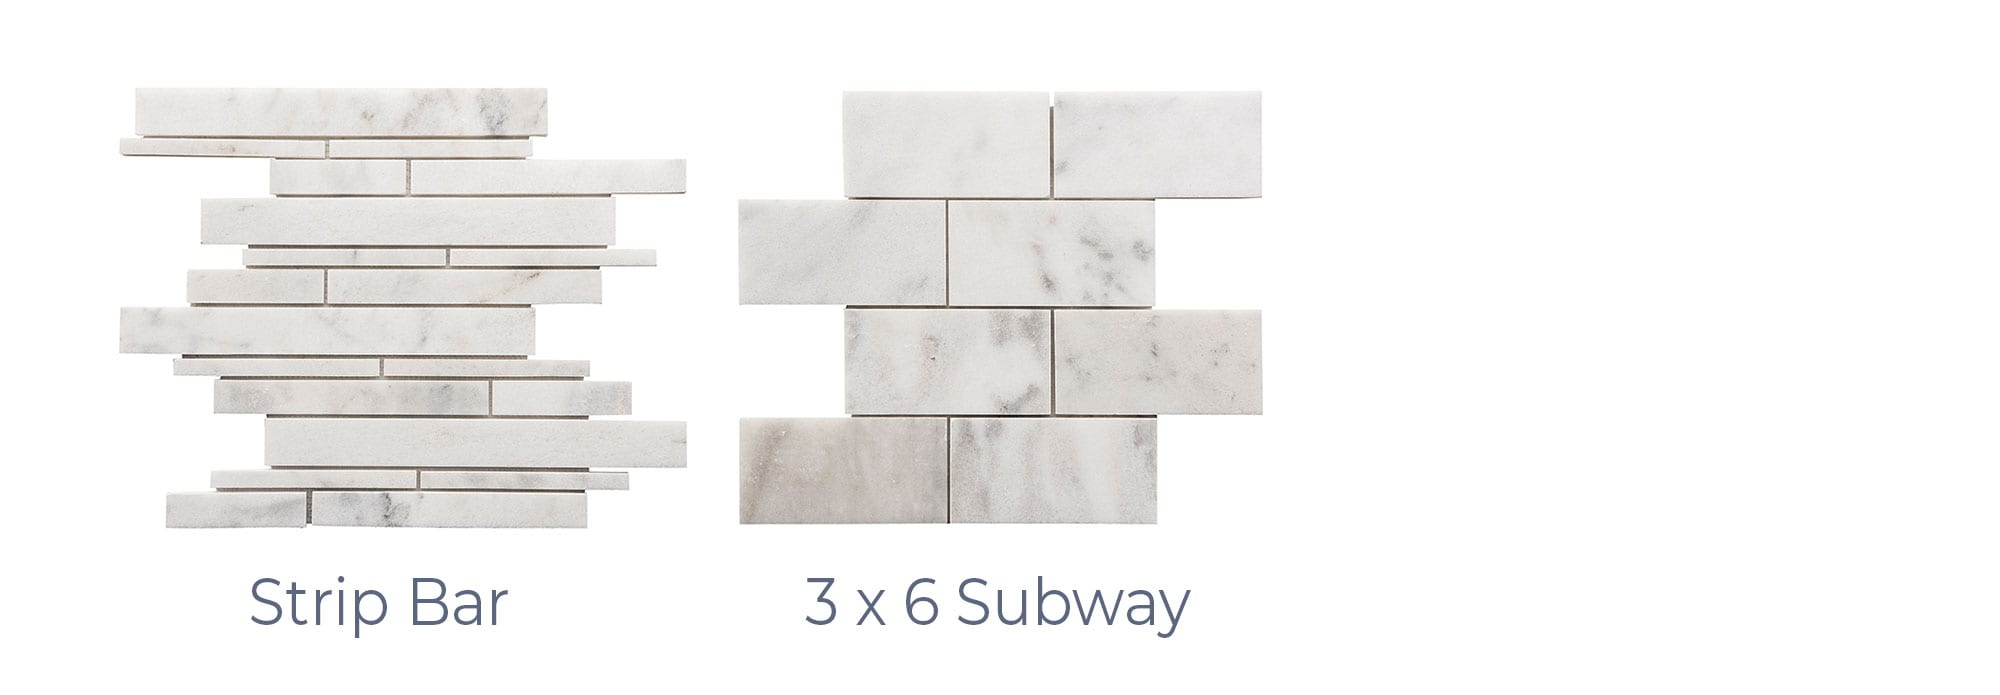 Stoneline-Group-Bianco-Ibiza-Marble-Collection-Marble-Mosaic-varieties-3×6-subway-strip-bar-Pictures